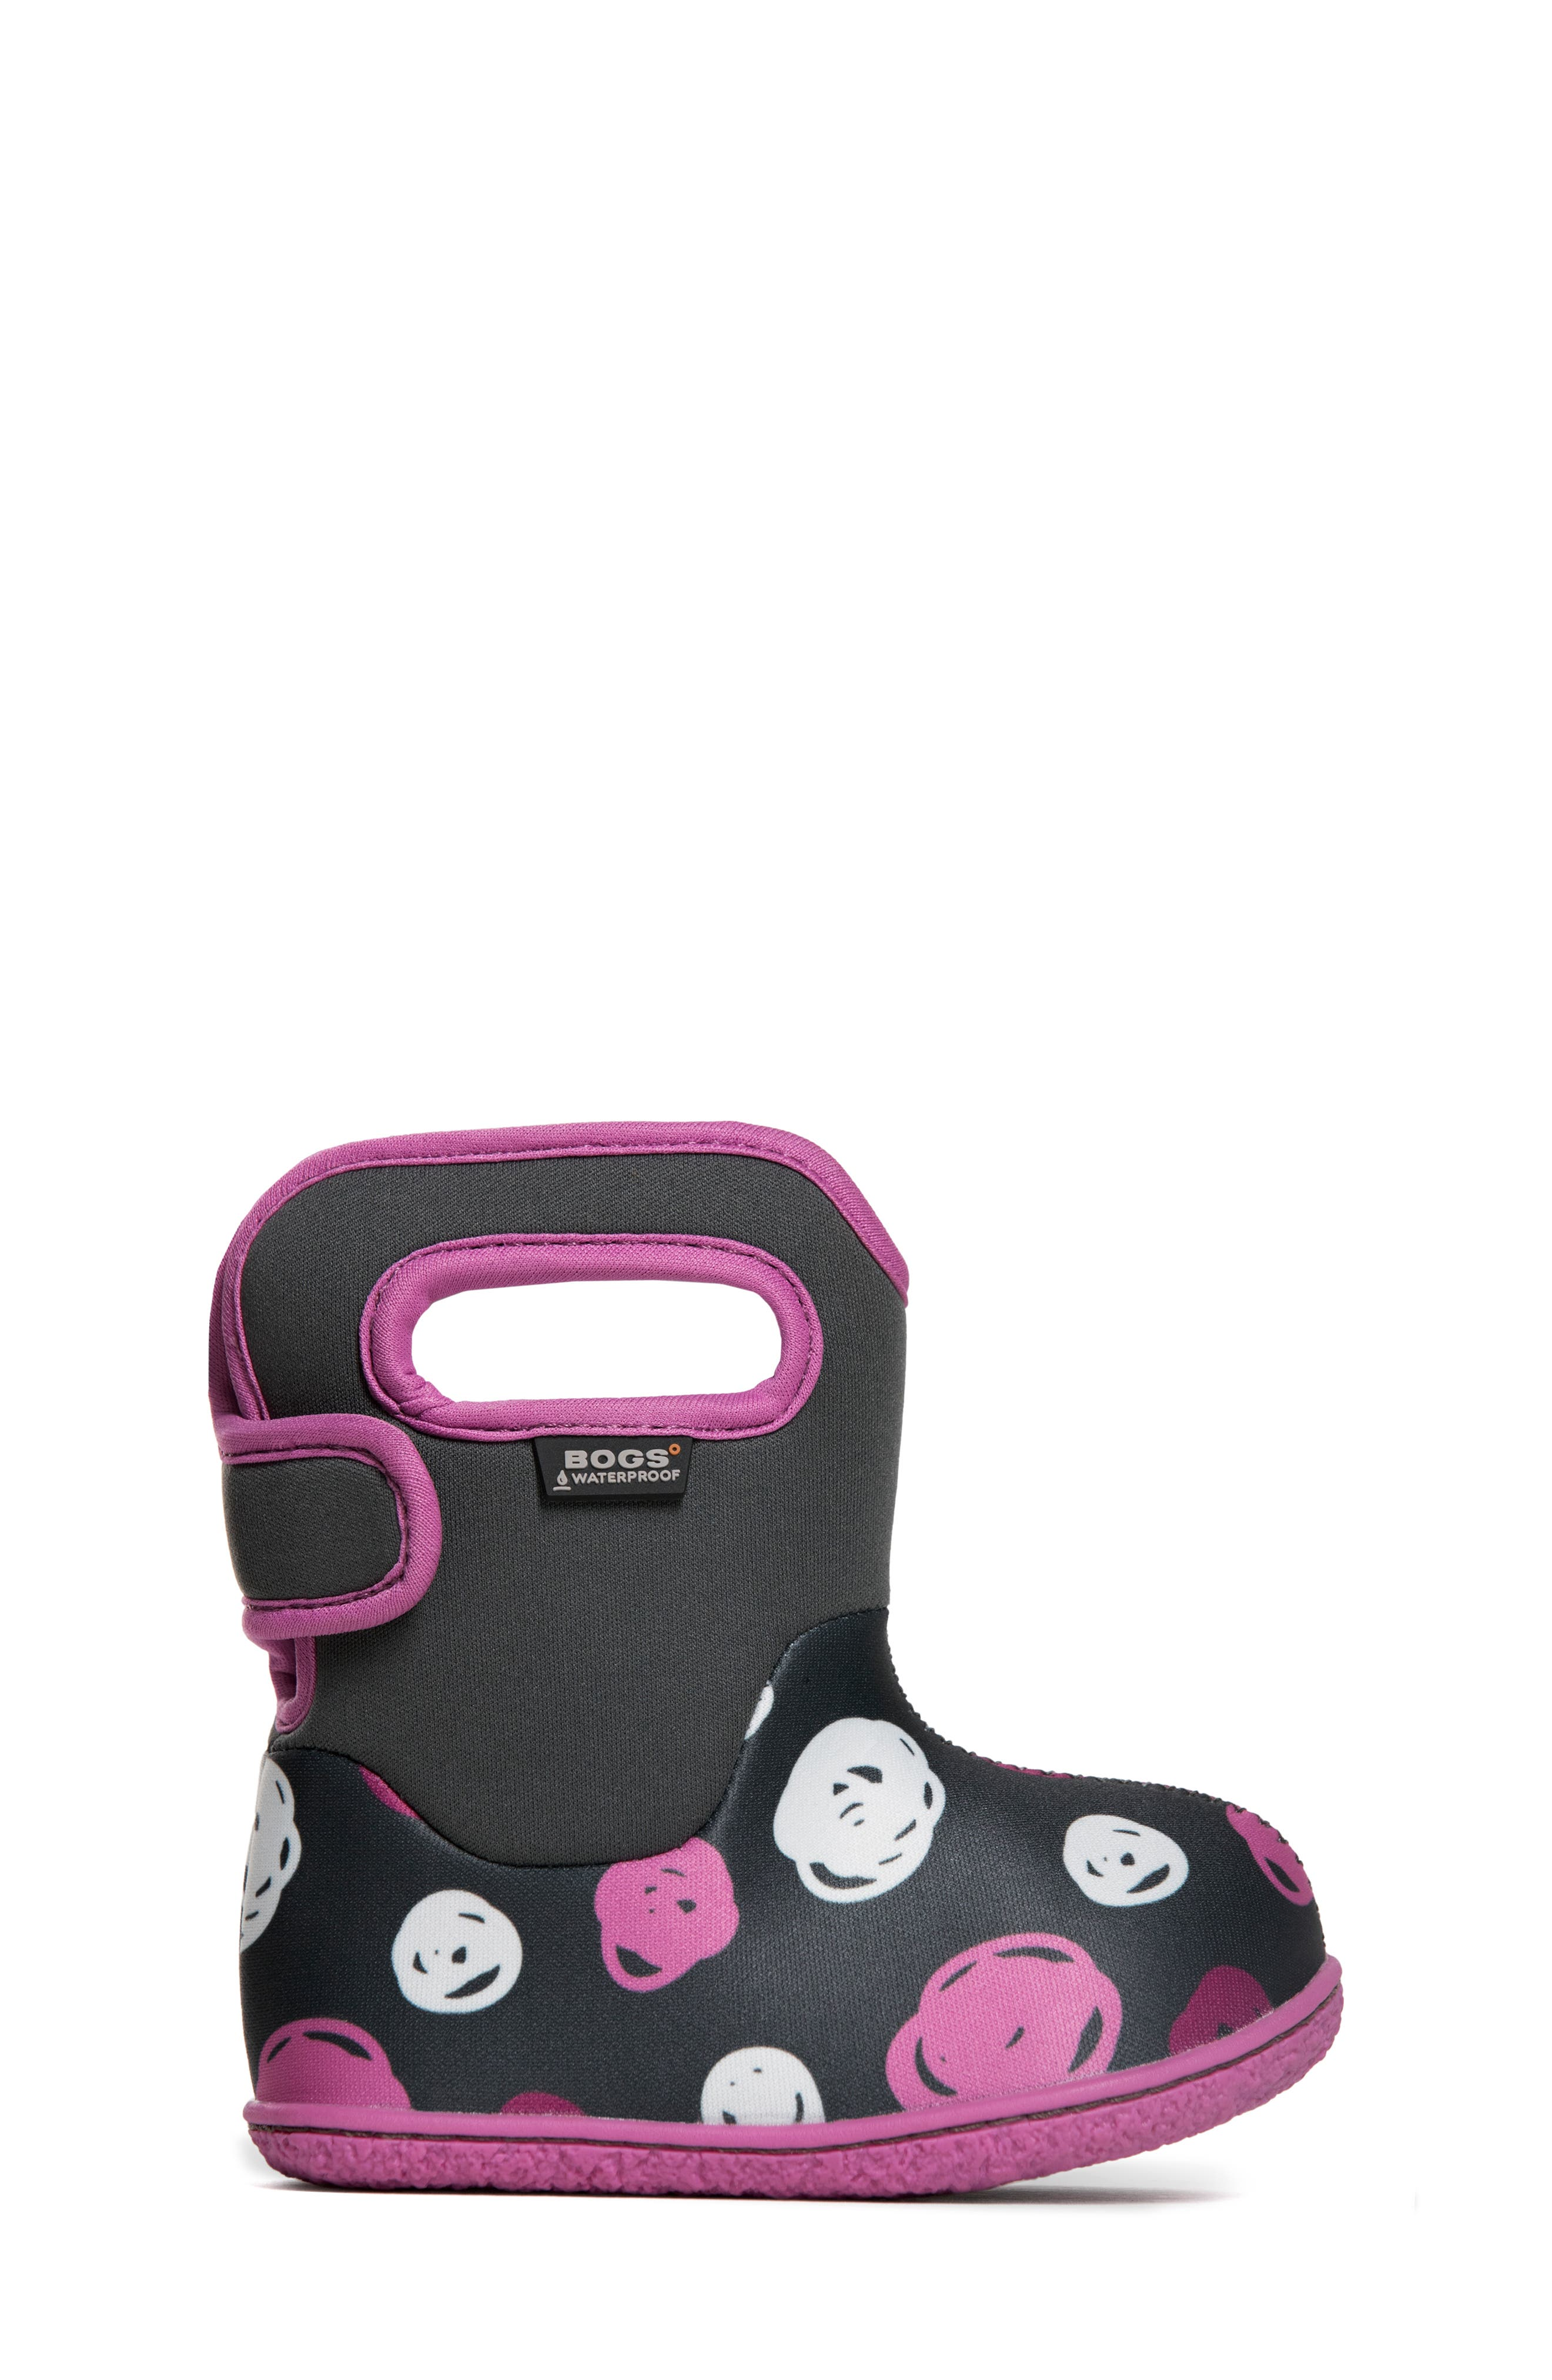 Baby Bogs Classic Sketched Dots Washable Insulated Waterproof Boot,                             Alternate thumbnail 3, color,                             DARK GRAY MULTI